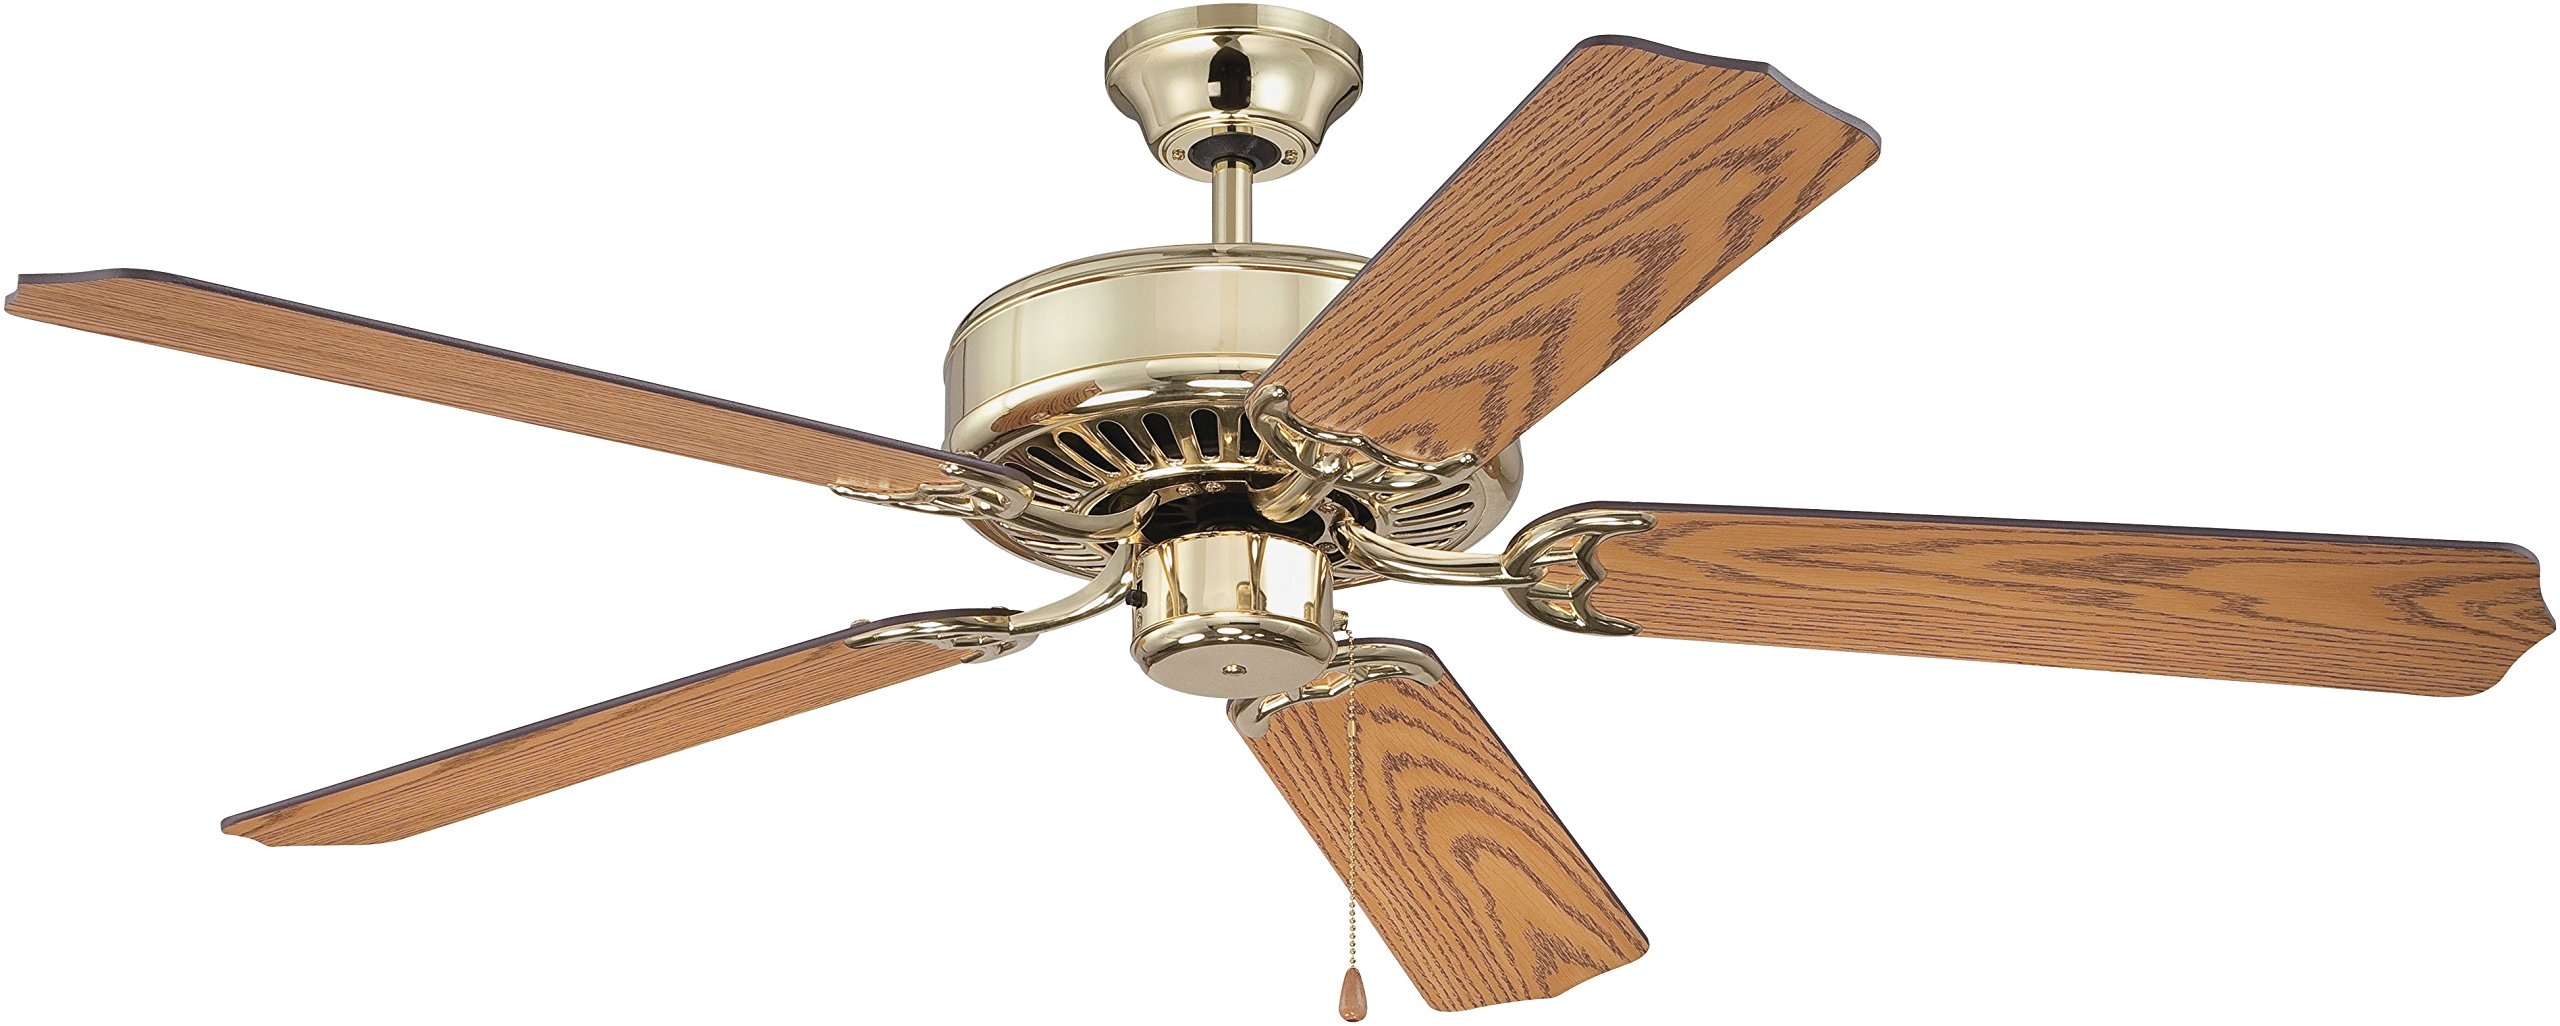 Craftmade K11137 Ceiling Fan Motor with Blades Included, 52''